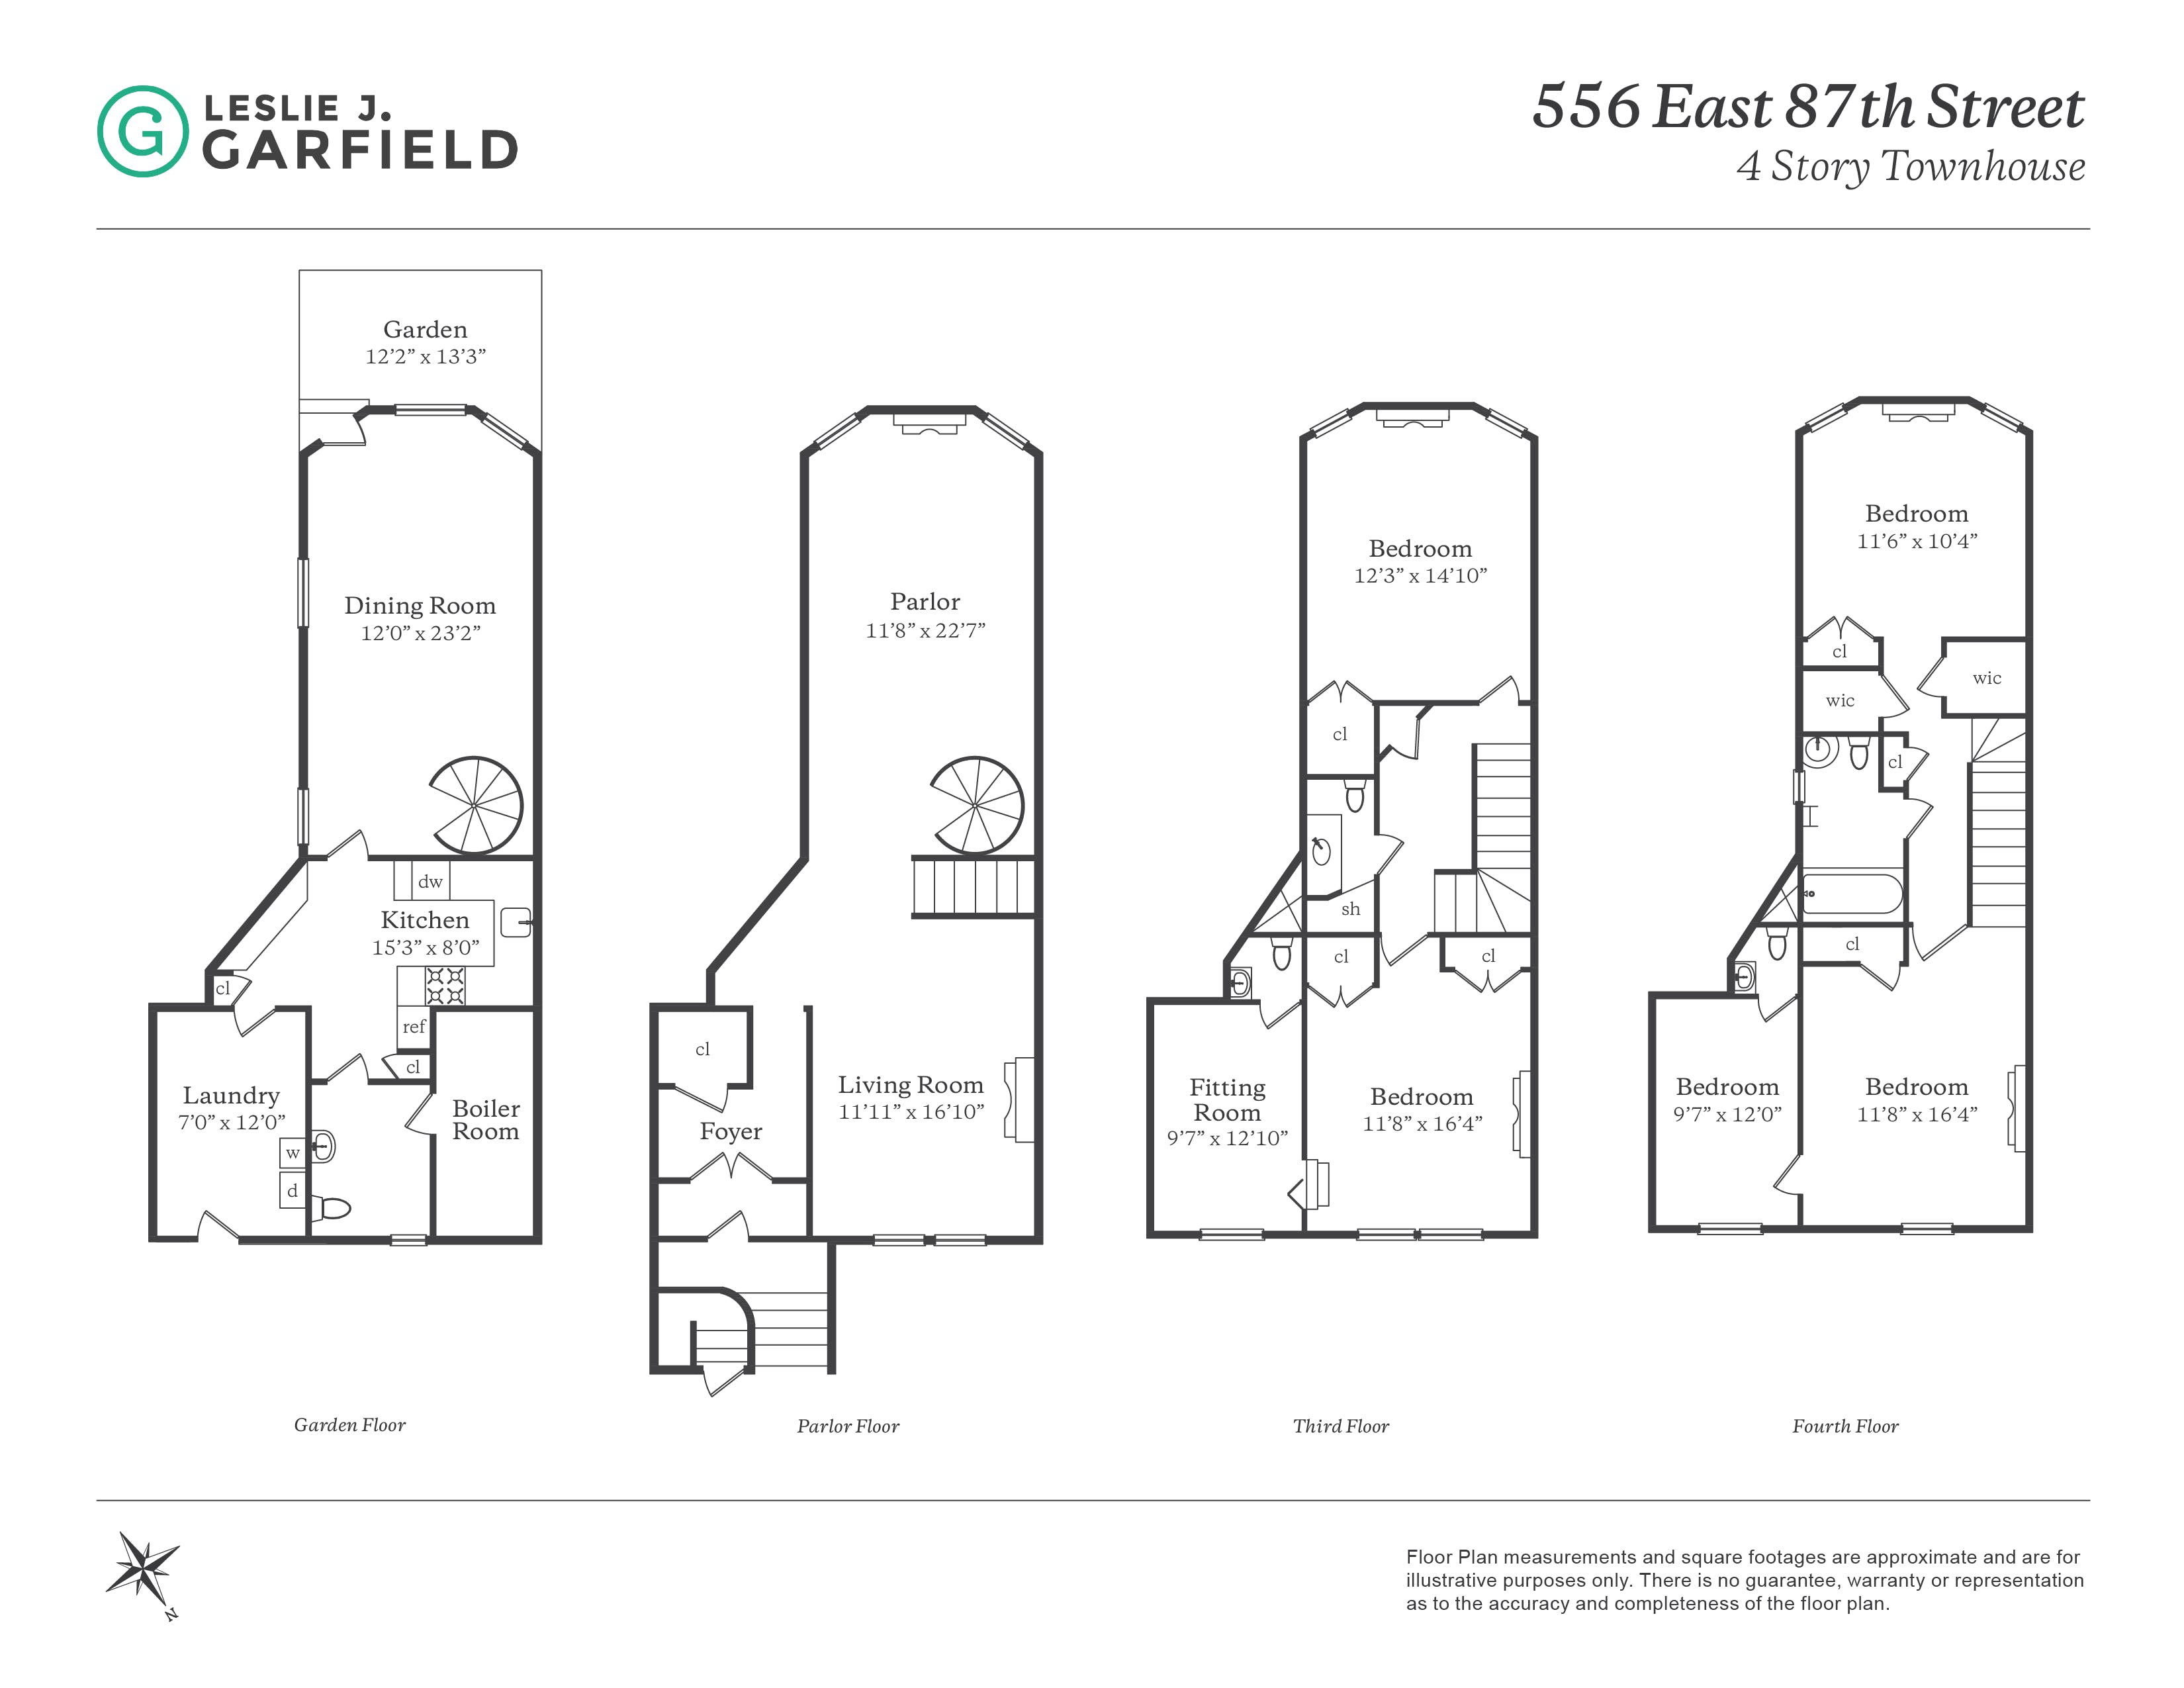 556 East 87th Street - 43a88703-21d9-4d31-8b43-5bc860f07760 - New York City Townhouse Real Estate